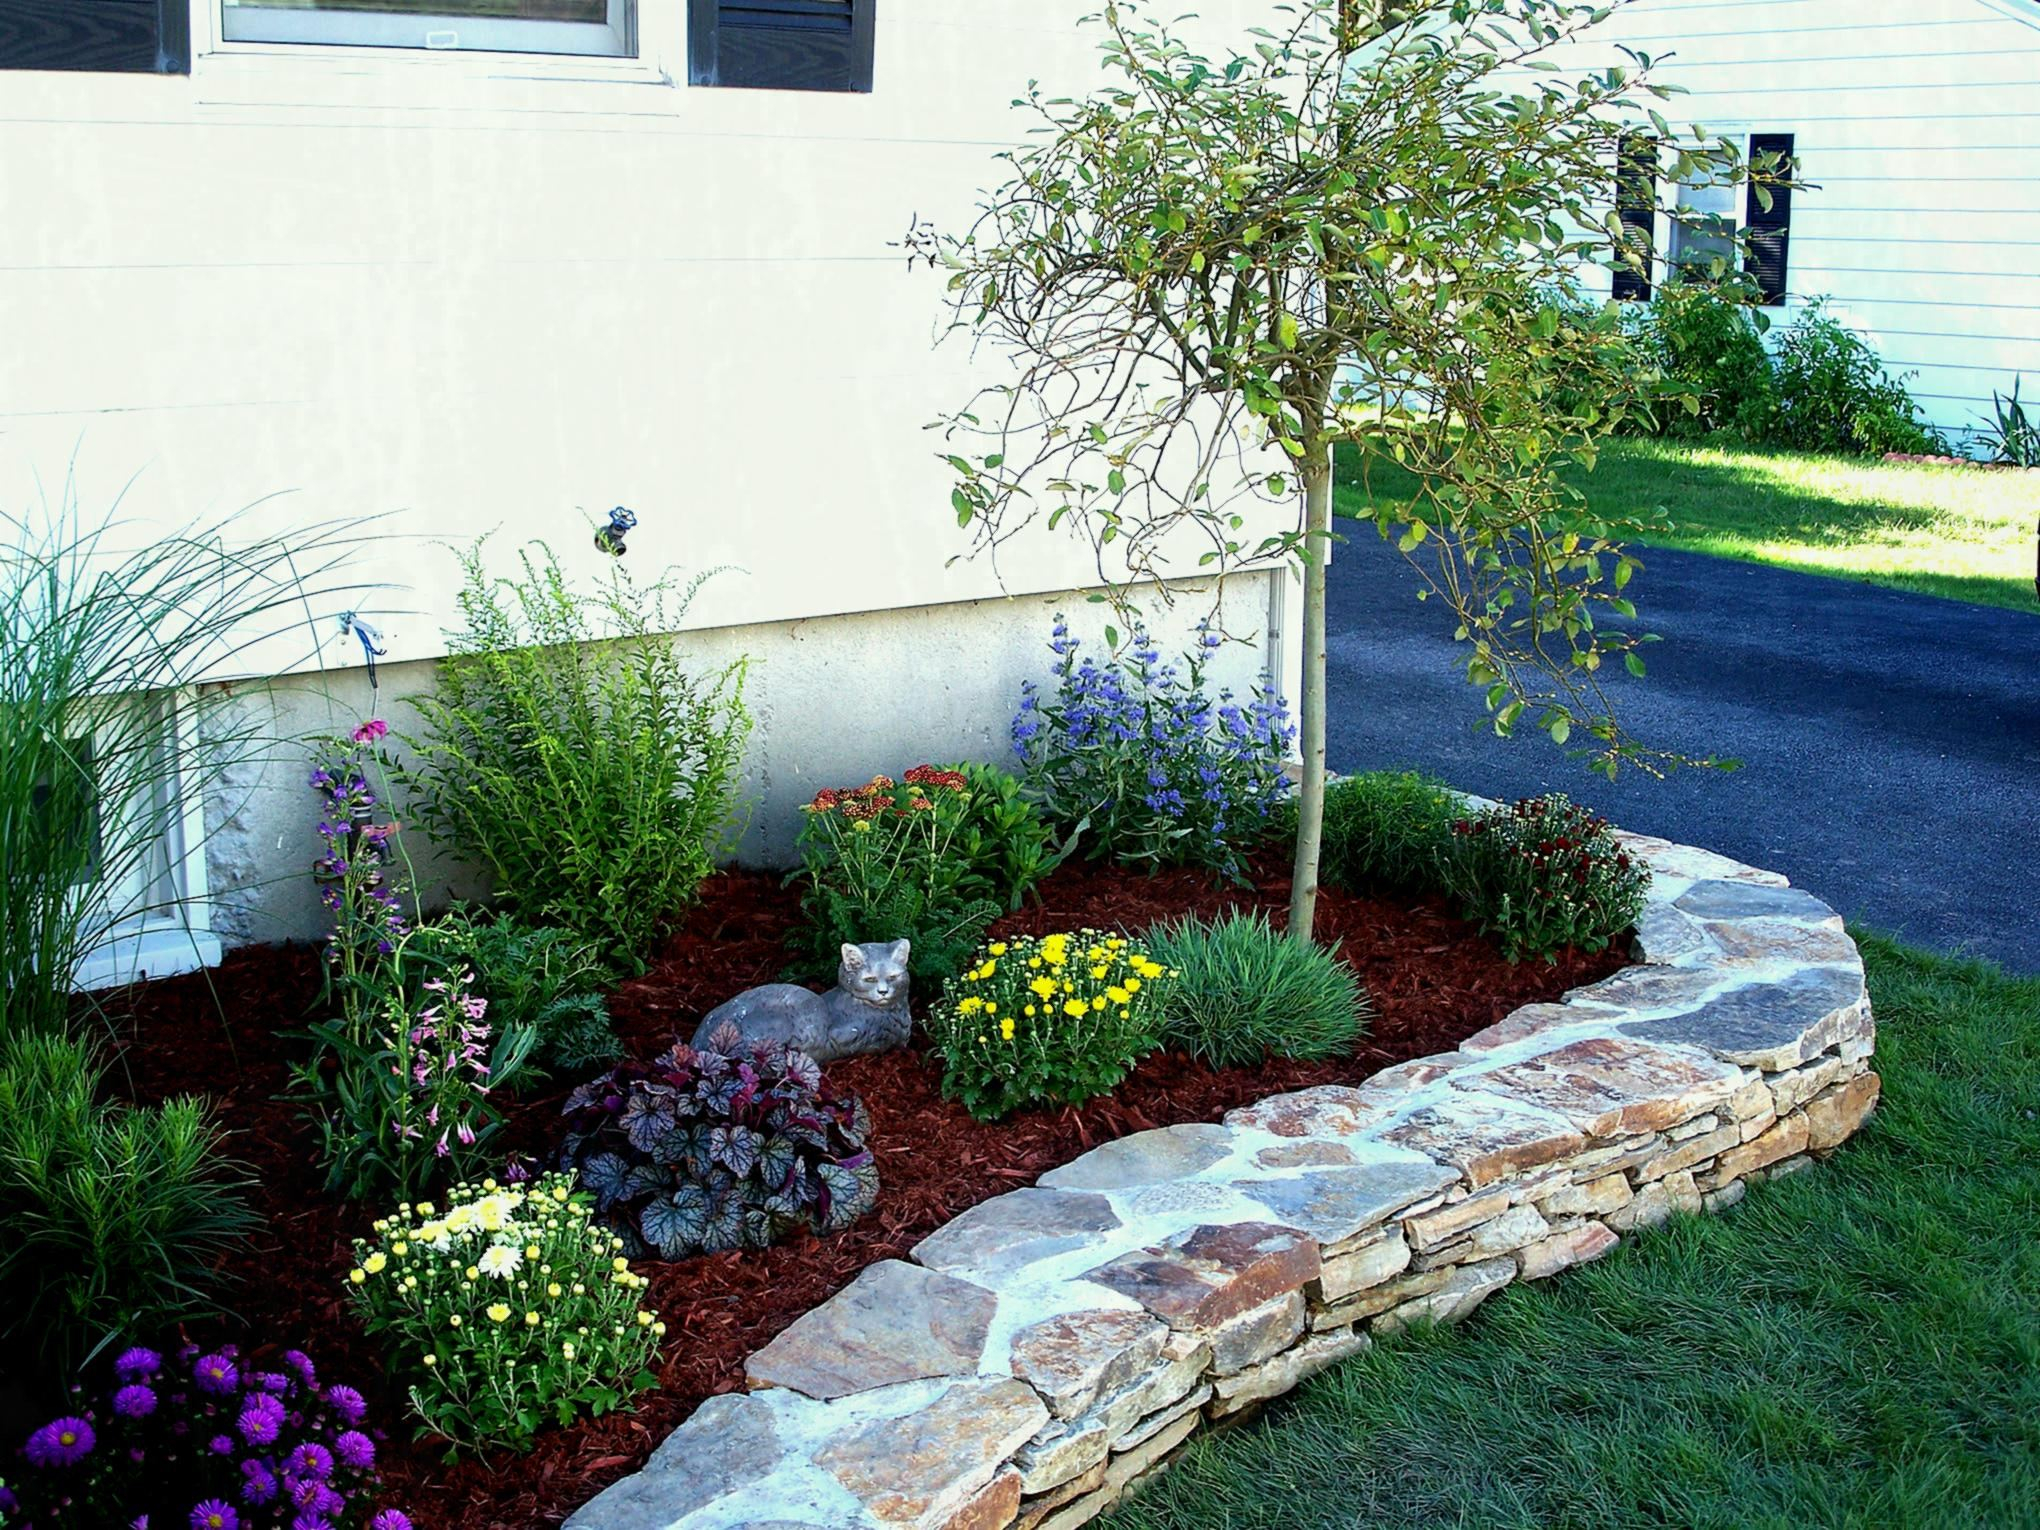 Landscaping Incredible Front Yard Landscape Ideas For Outdoor within 13 Smart Concepts of How to Craft Backyard Landscaping Ideas With Stones